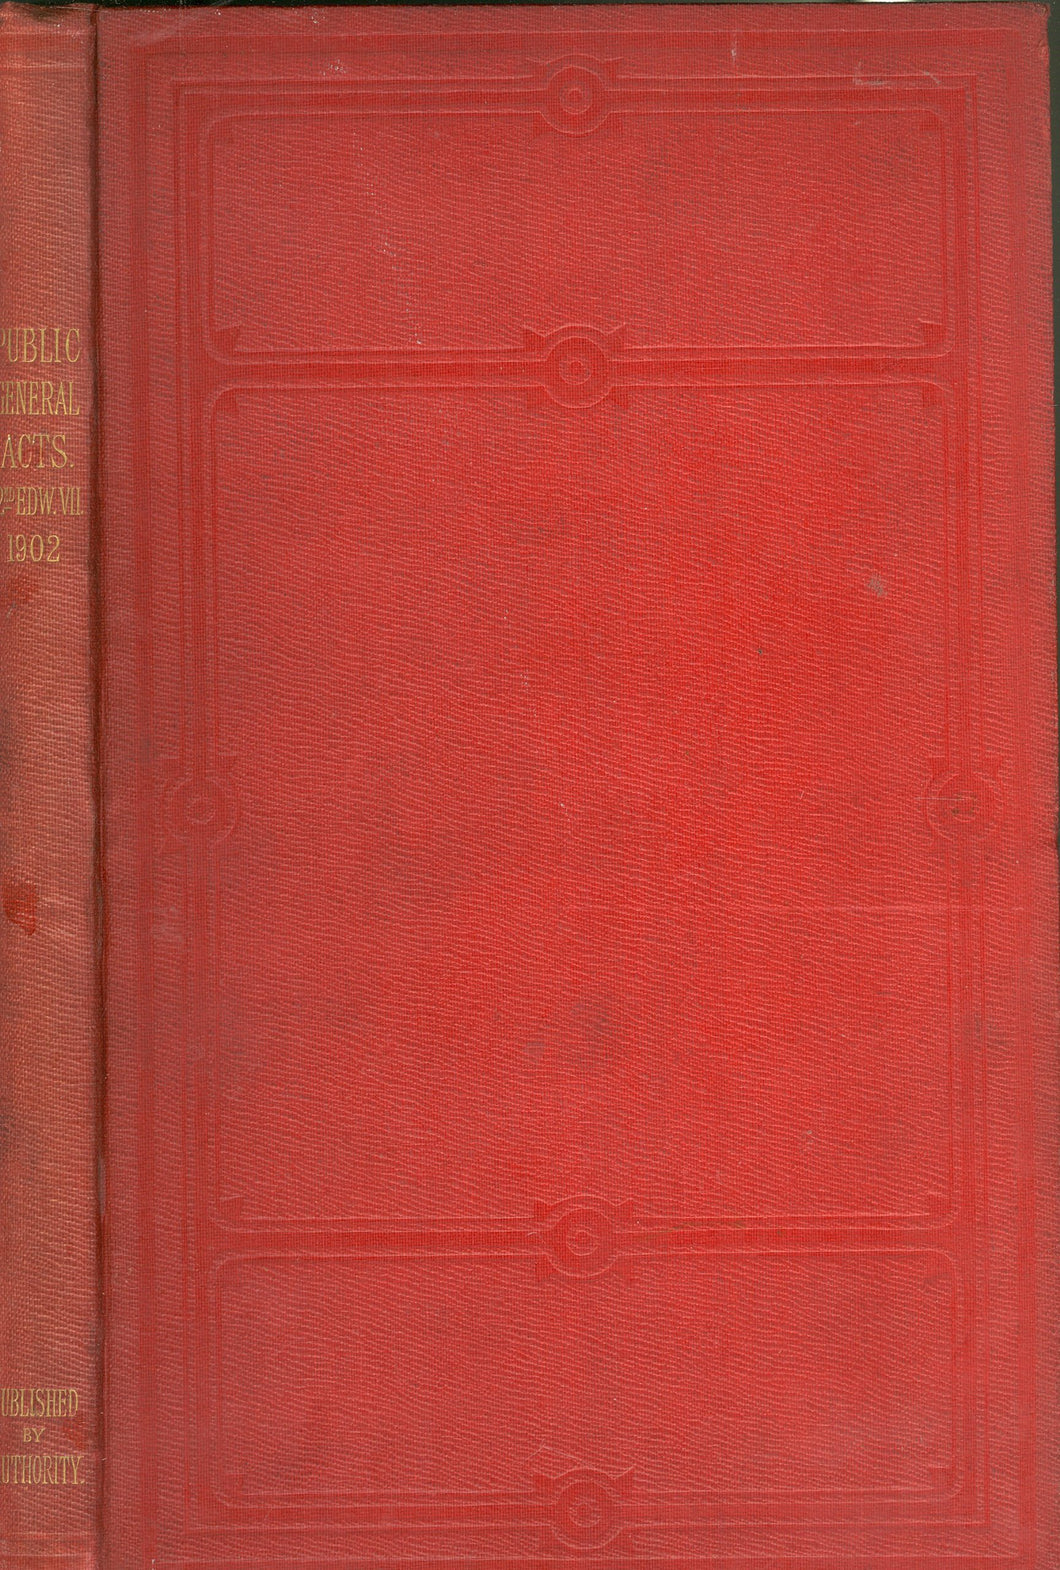 Public General Acts 2nd EDW.VII 1902 by Various